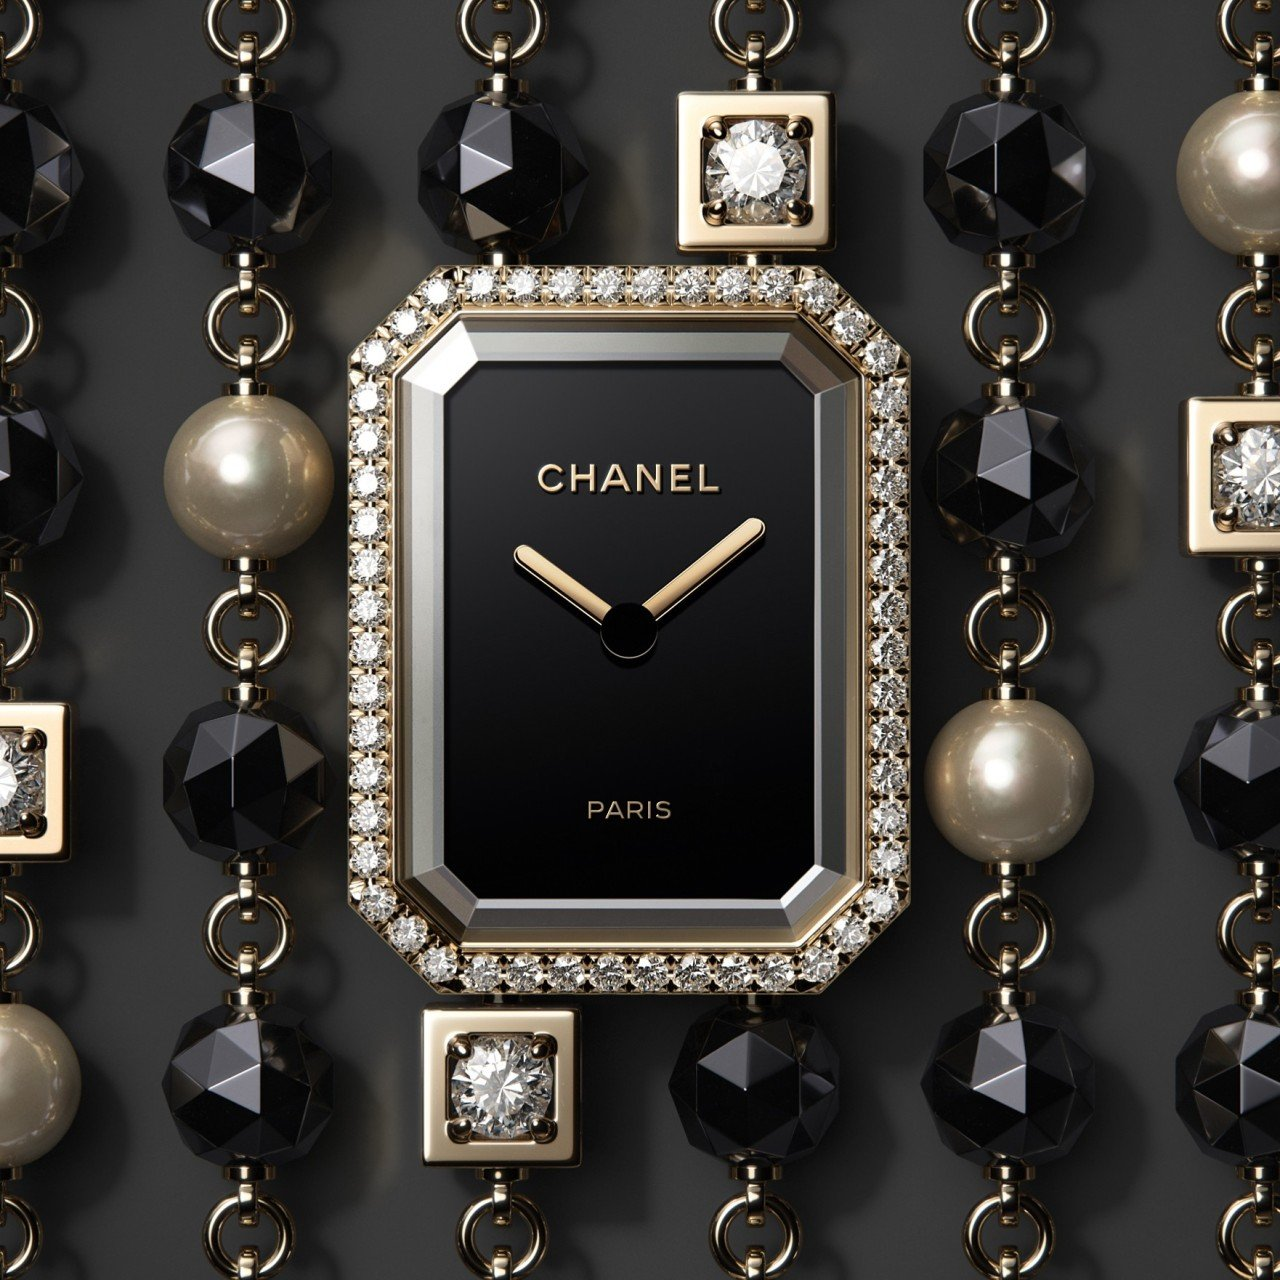 STYLE Edit: Chanel reinvents its 1987 classic timepiece with 18